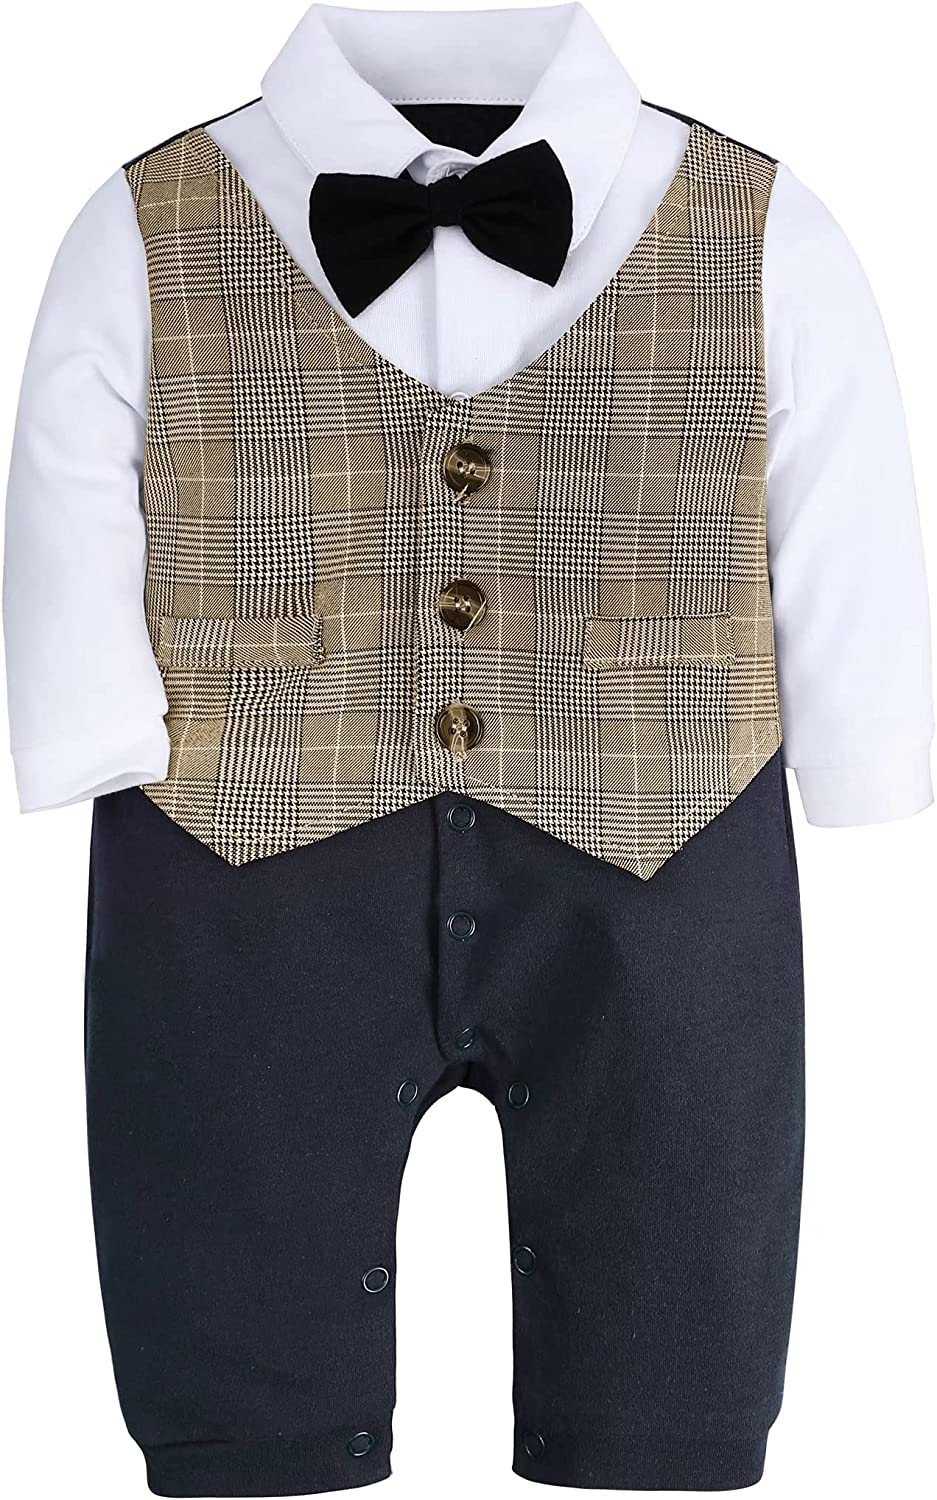 A&J DESIGN Baby Boys' Gentleman Rompers Tuxedo Outfits Suit with Bowtie